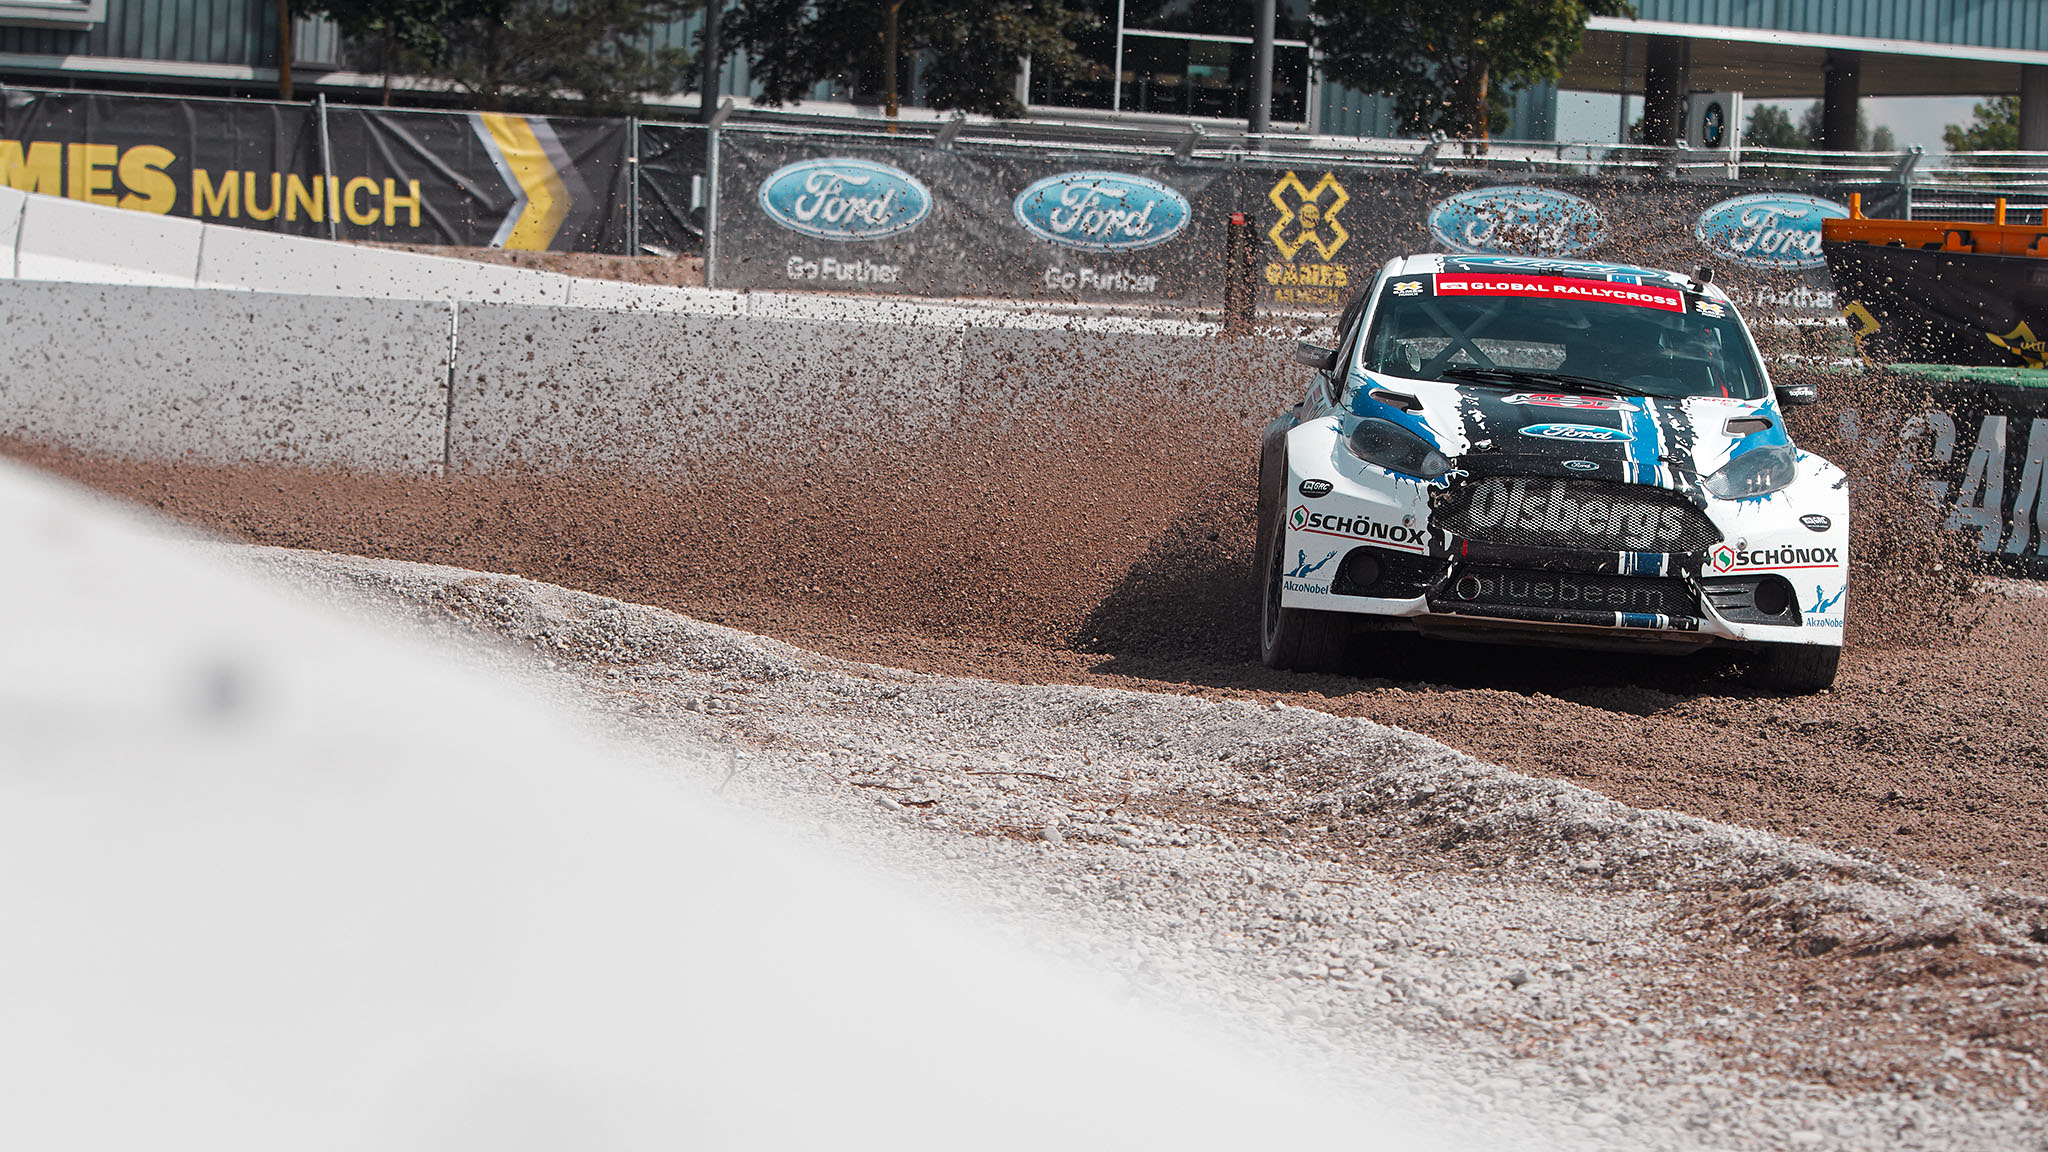 Toomas Topi Heikkinen picked up a bronze medal in Saturday's RallyCross final and improved on that in Sunday's drier conditions at X Games Munich. Heikkinen captured gold for his third consecutive RallyCross podium this year.